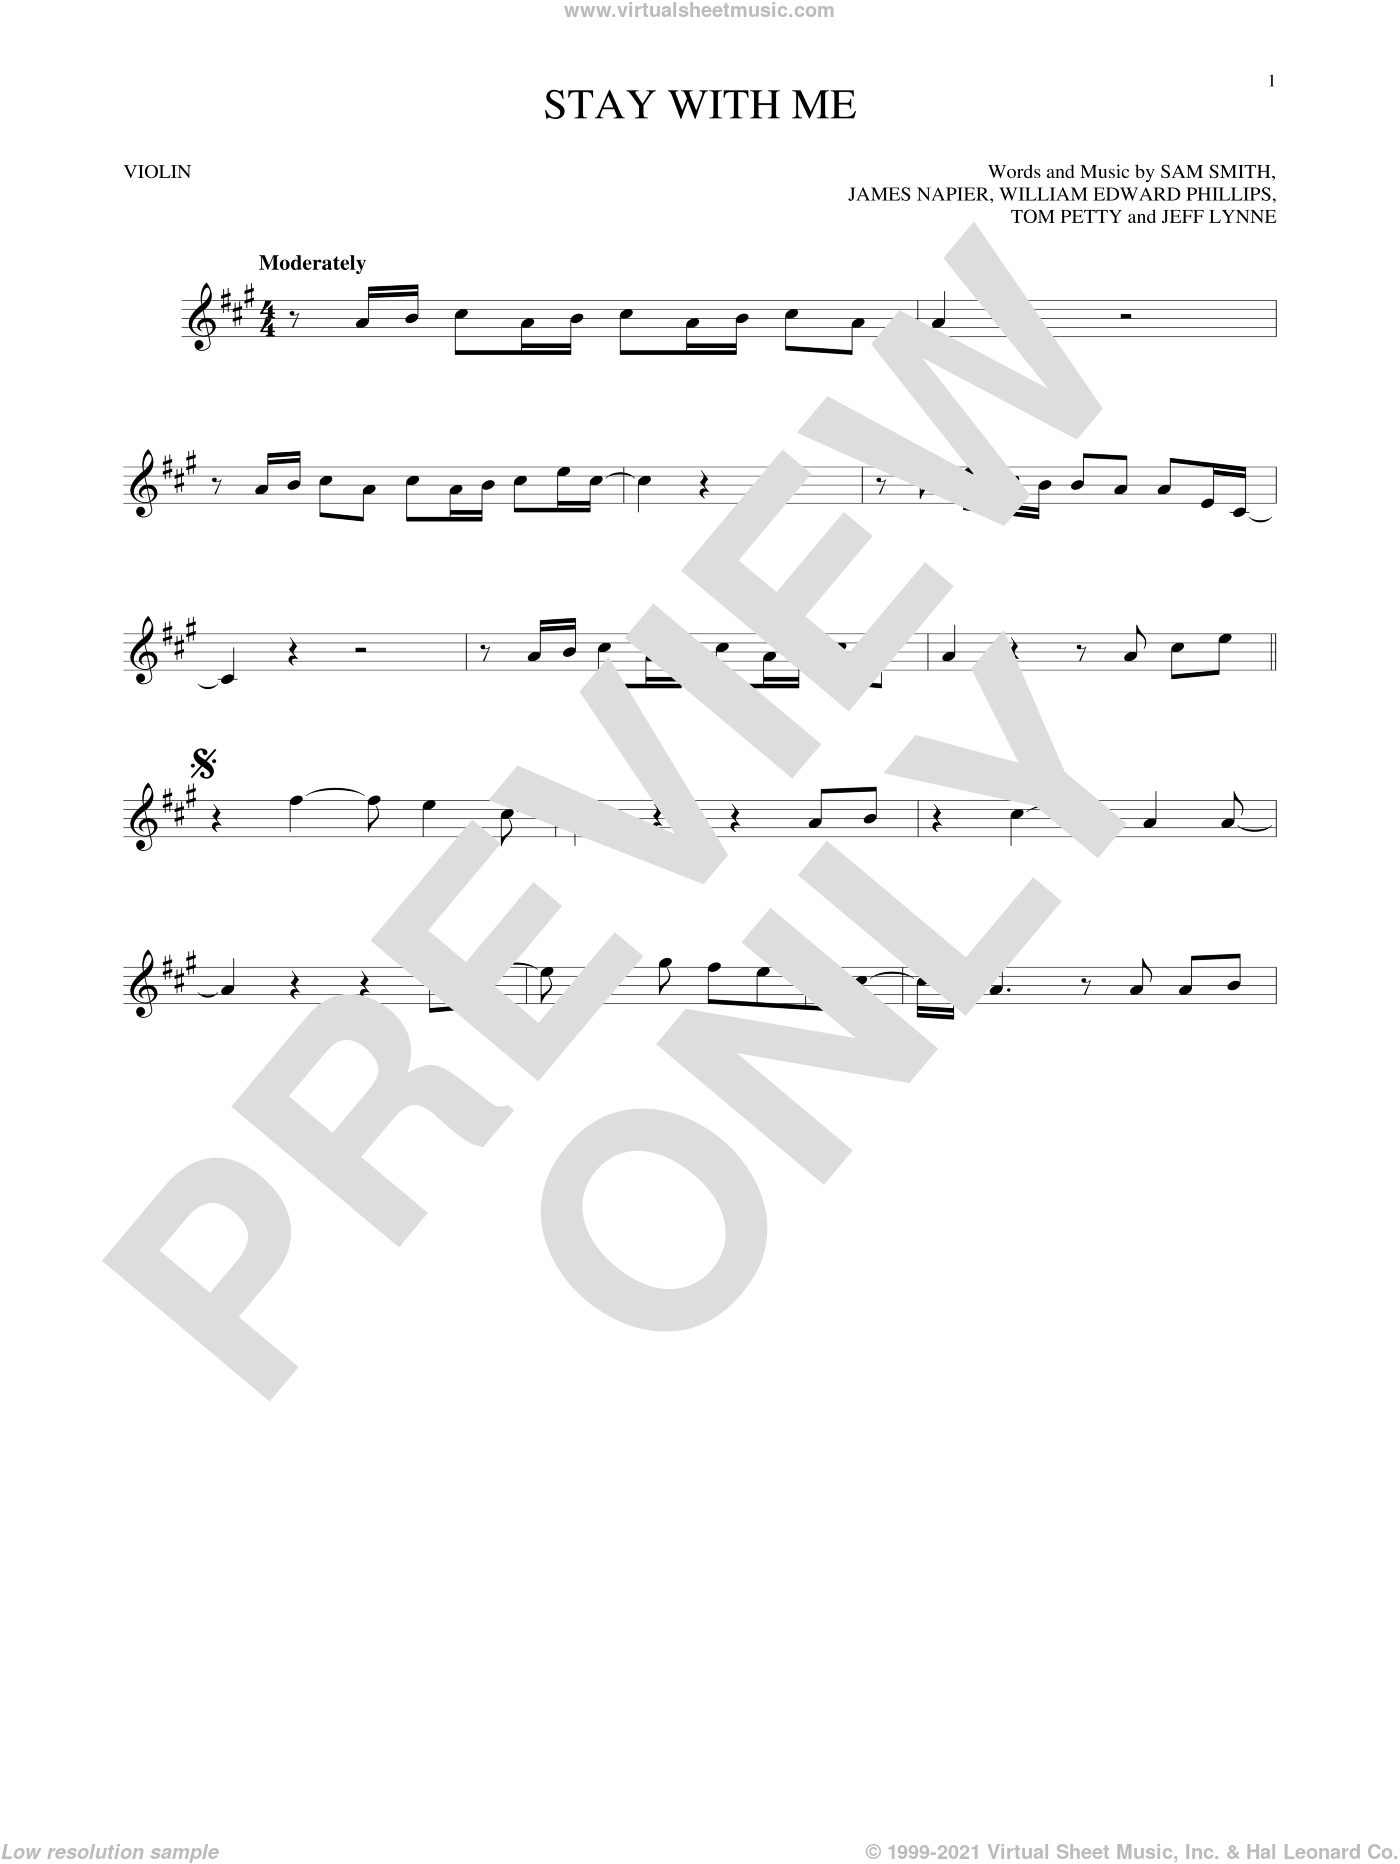 Stay With Me sheet music for violin solo by William Edward Phillips, James Napier, Jeff Lynne, Sam Smith and Tom Petty. Score Image Preview.